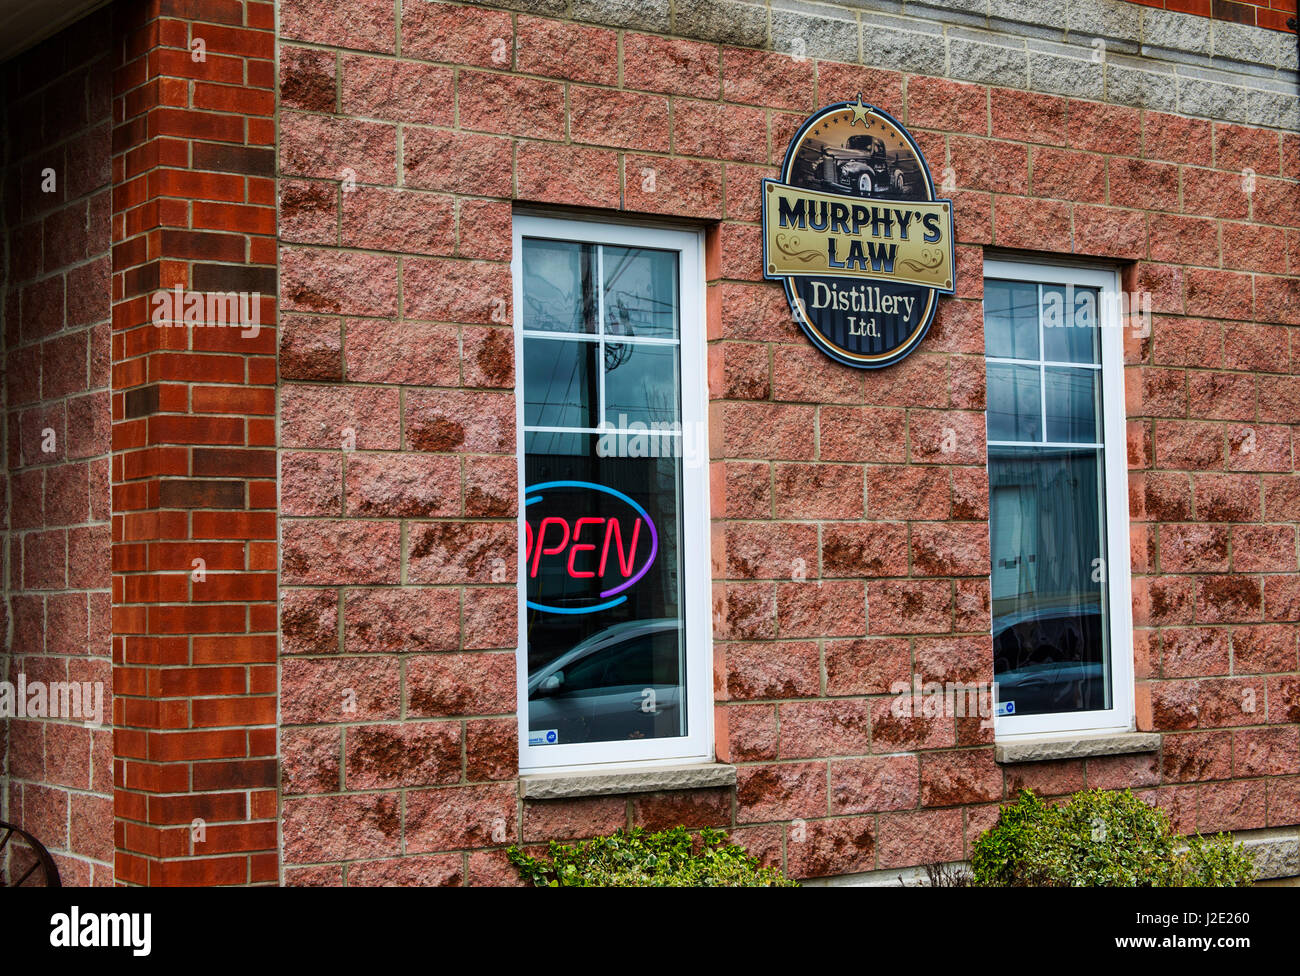 Murphy's Law Distillery Ltd. Elmira Ontario Canada - Stock Image